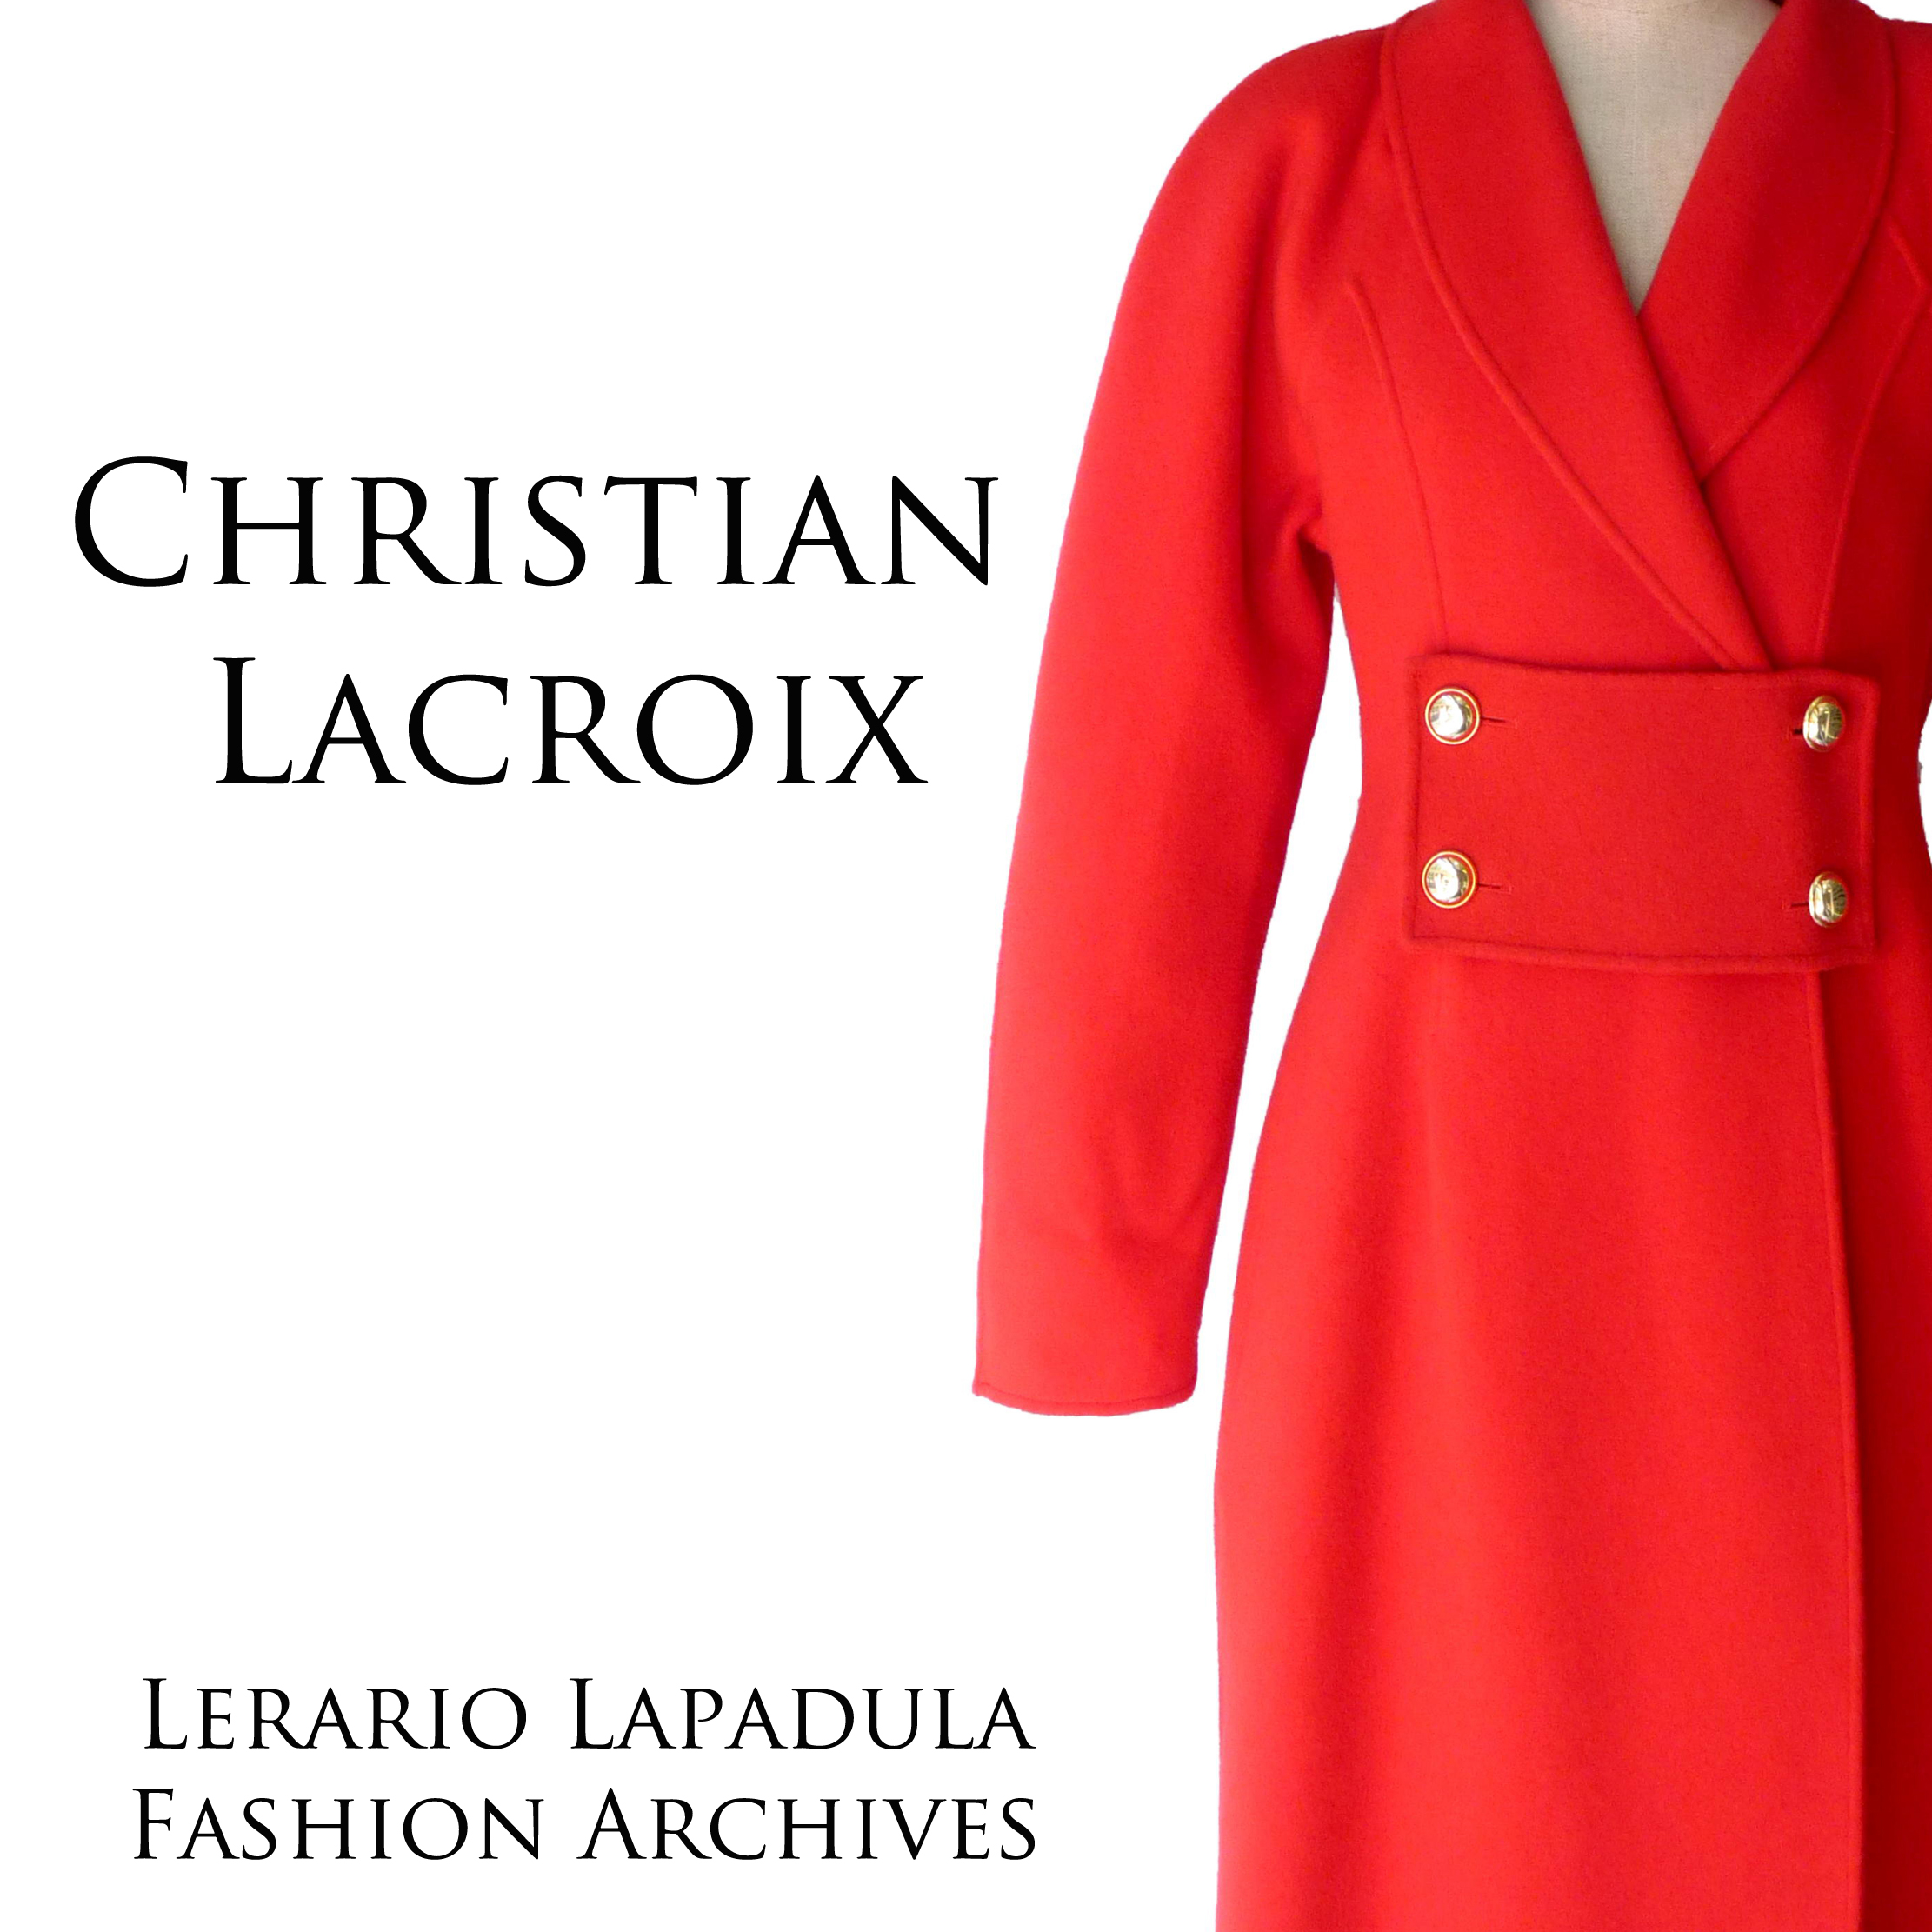 christian-lacroix-vintage-80s-90s-coat-red-wool-lerario-lapadula-fashion-archives